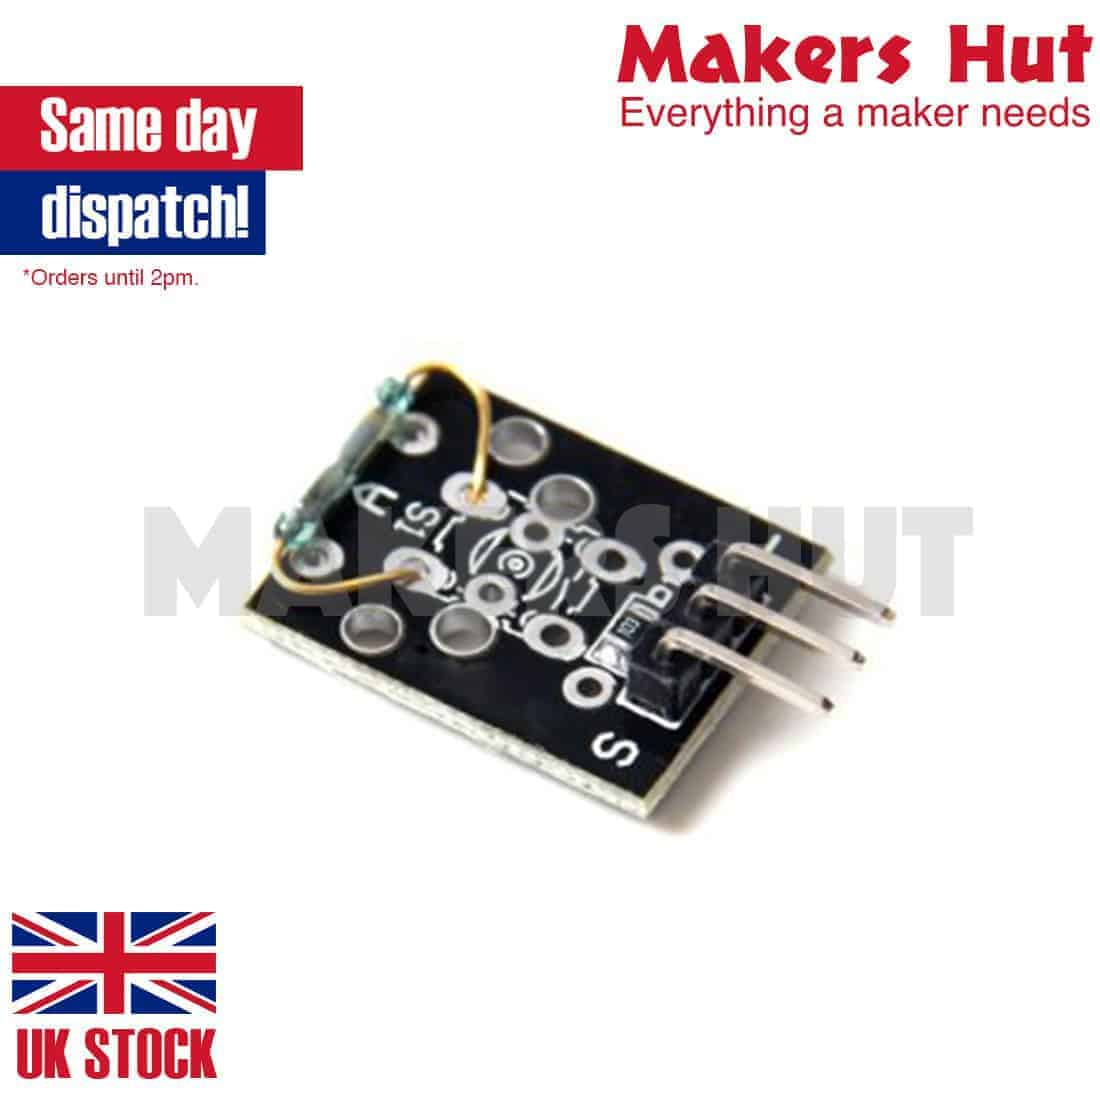 Mini Reed Switch Sensor Module Compatible Magnetic Ky 021 Arduino Switches And Hall Effect Sensors